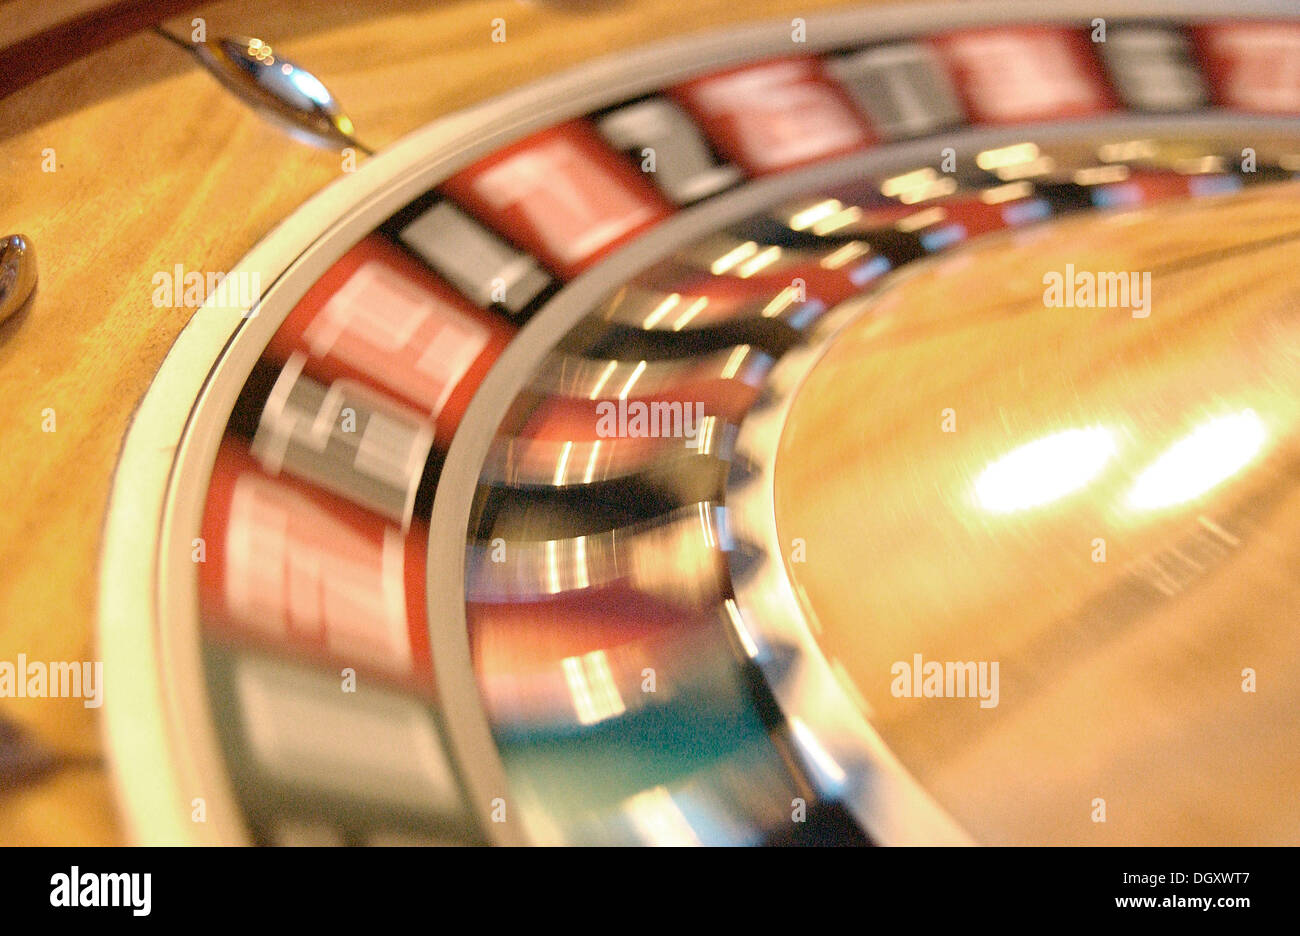 Rotating roulette wheel with motion blur - Stock Image